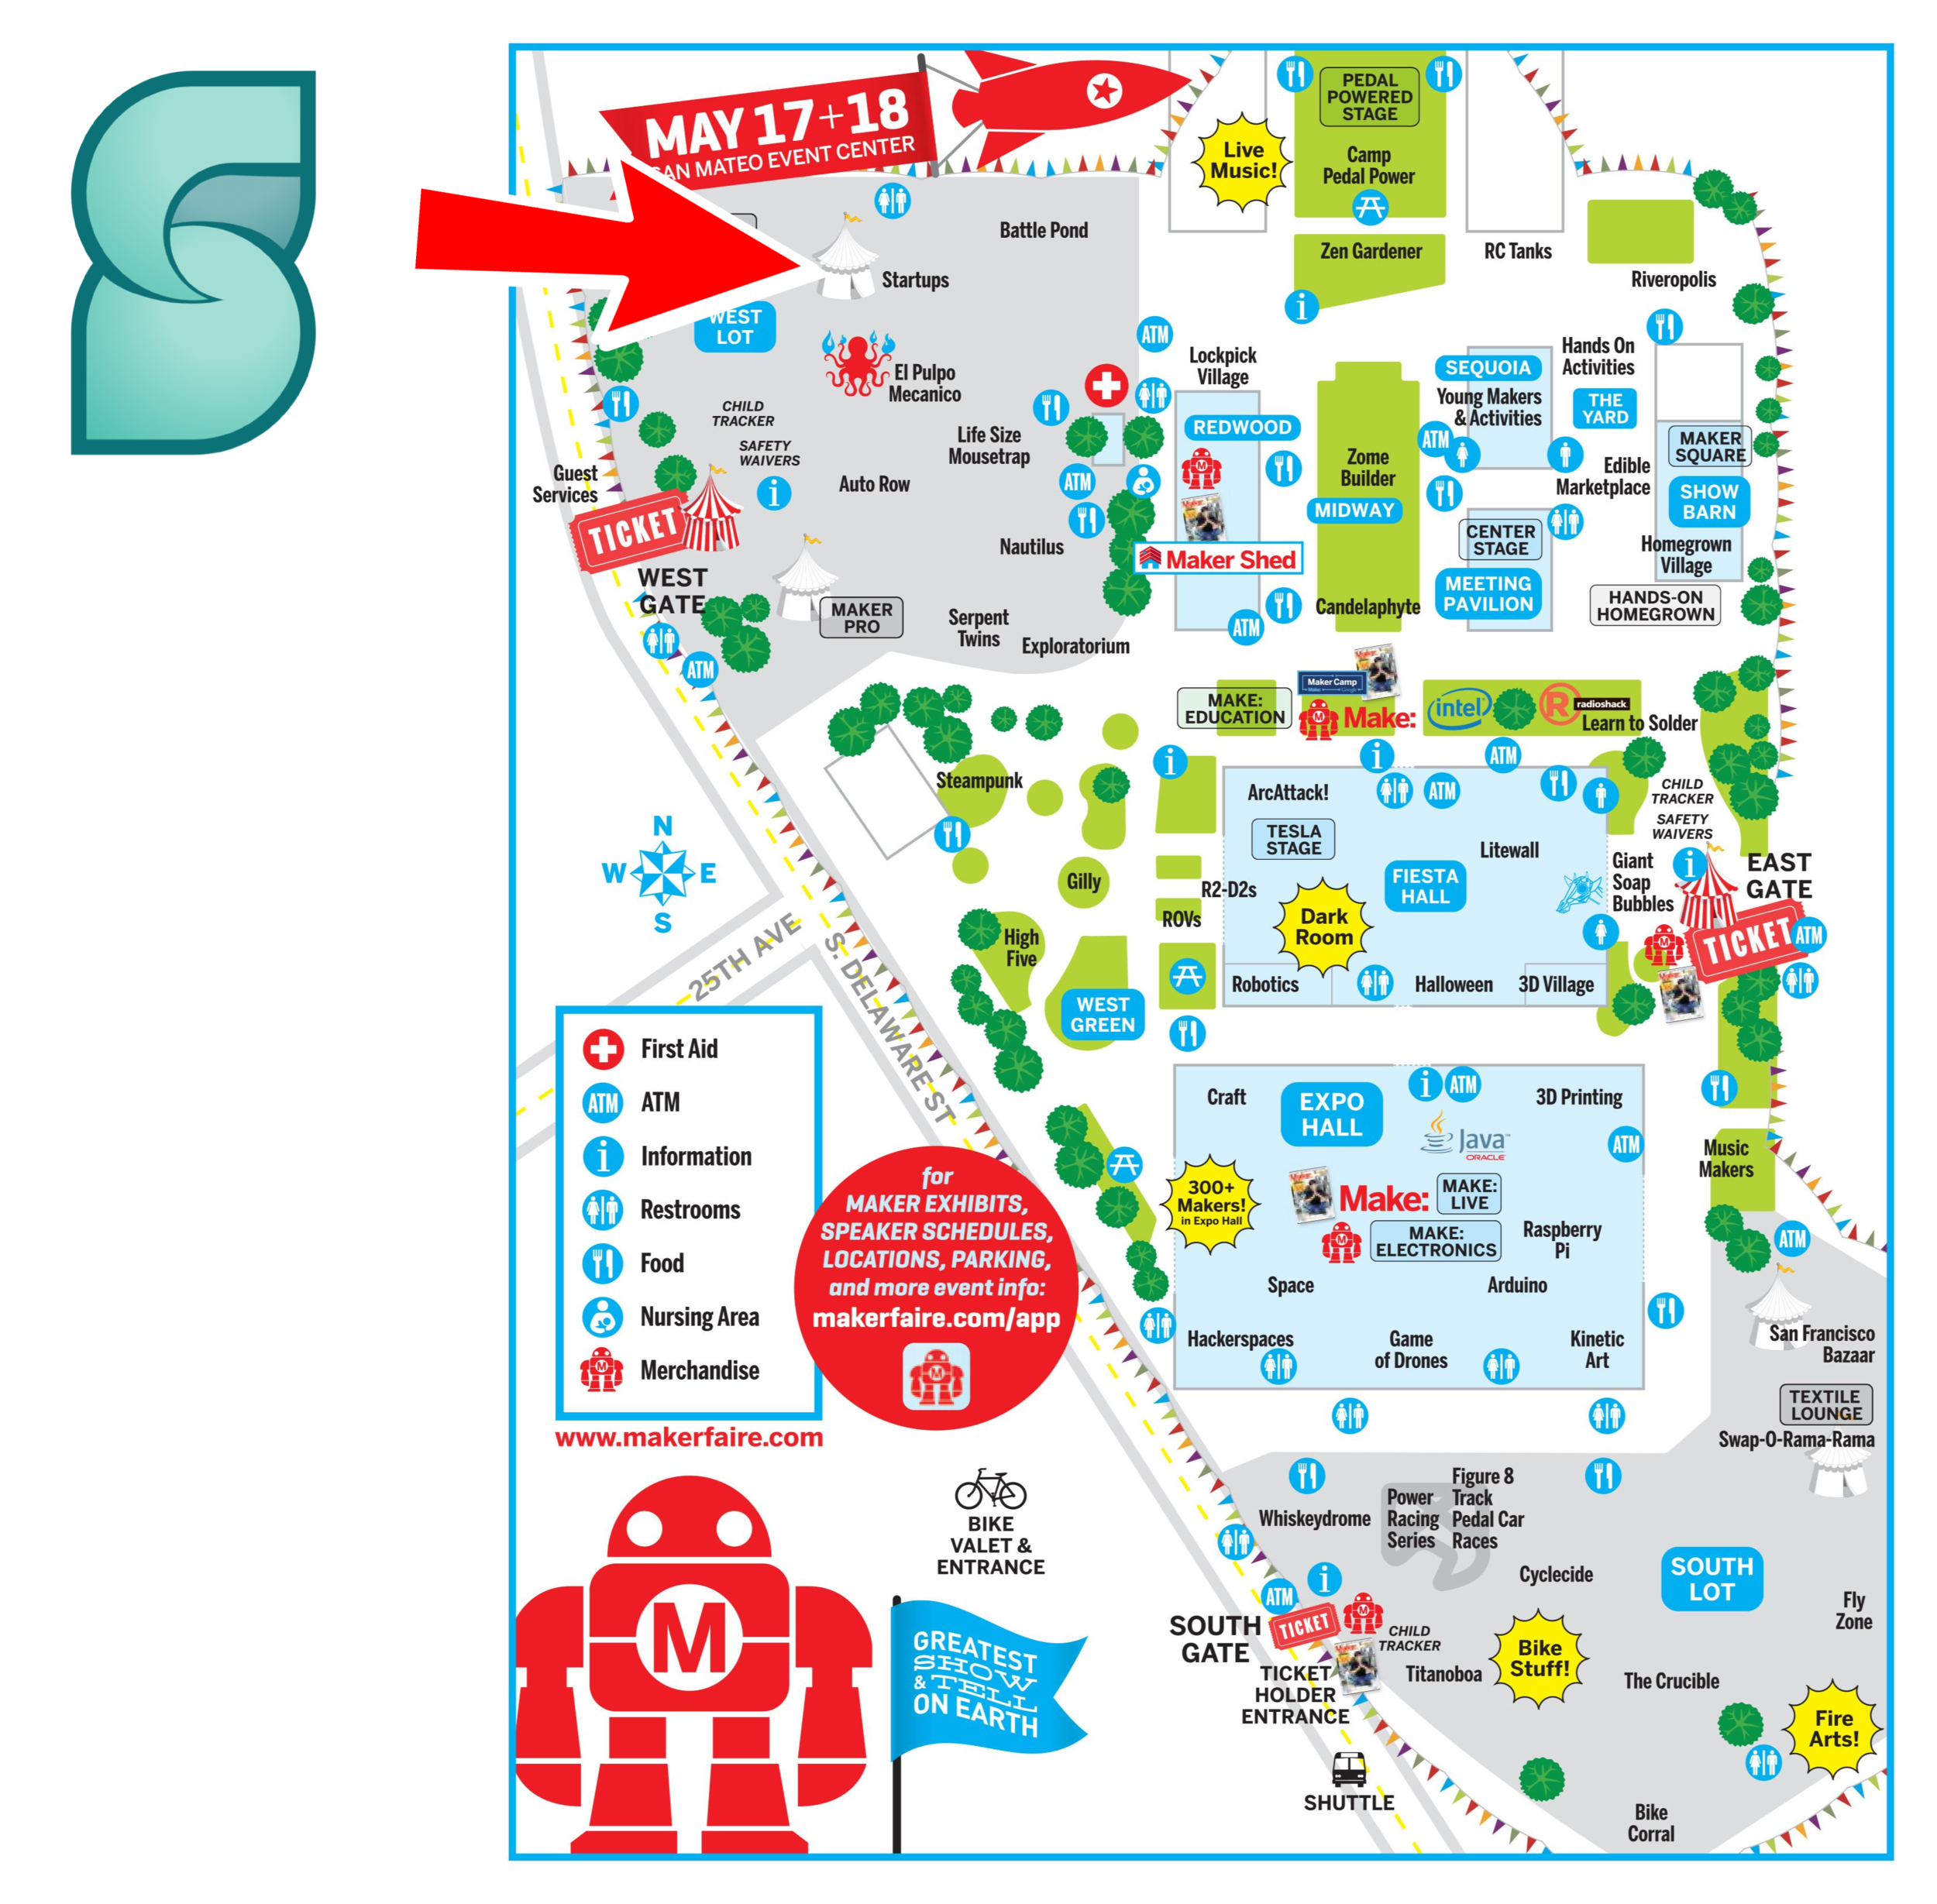 maker-faire-map-to-structur3d.png